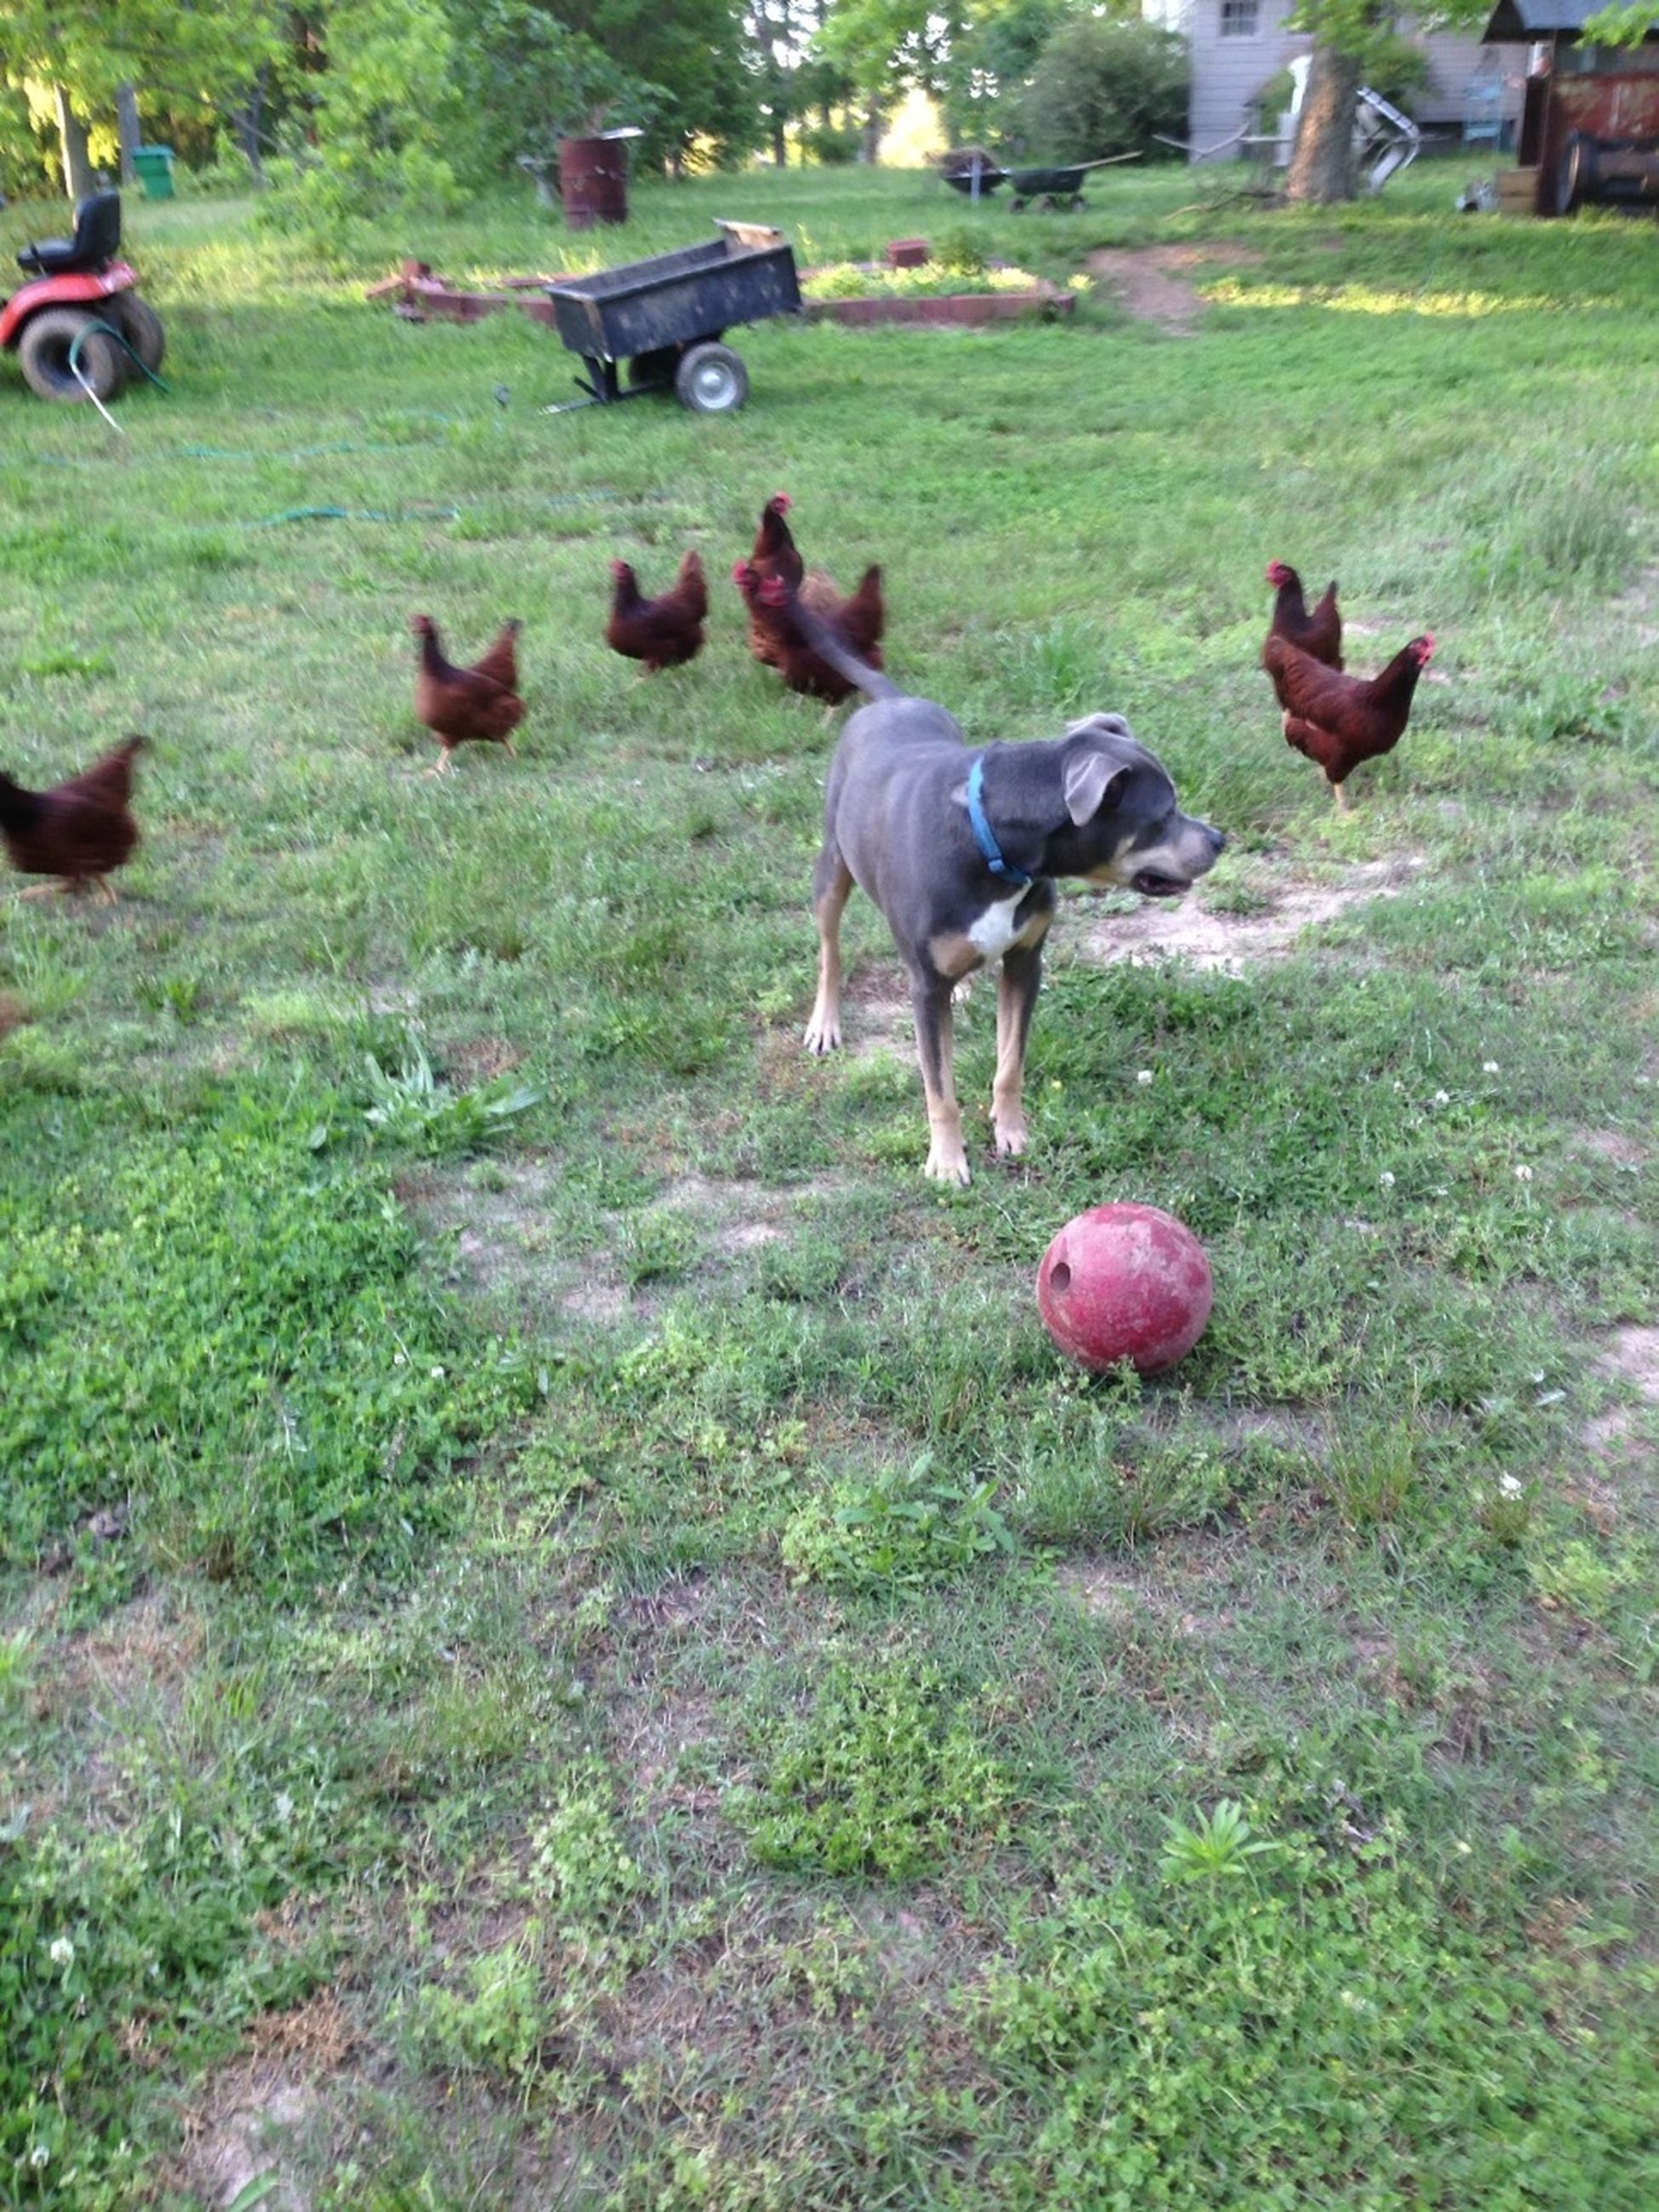 Being Chaced Down By Chickens